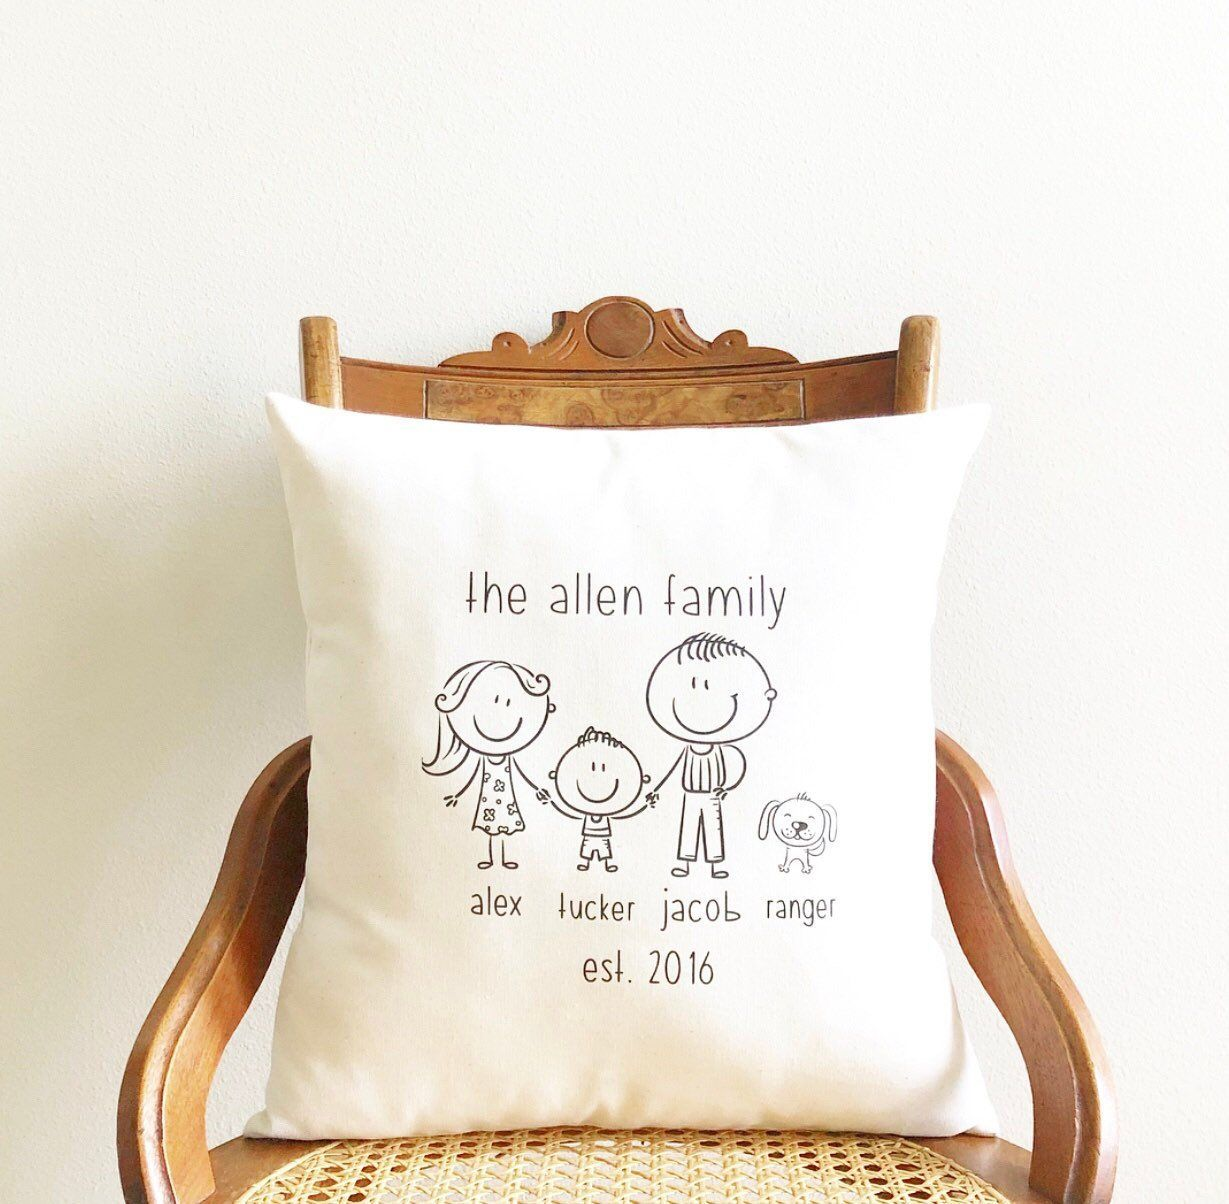 Wedding Gifts For Relatives: Mother's Day Gift, Gift For Mom, Stick Figure Family